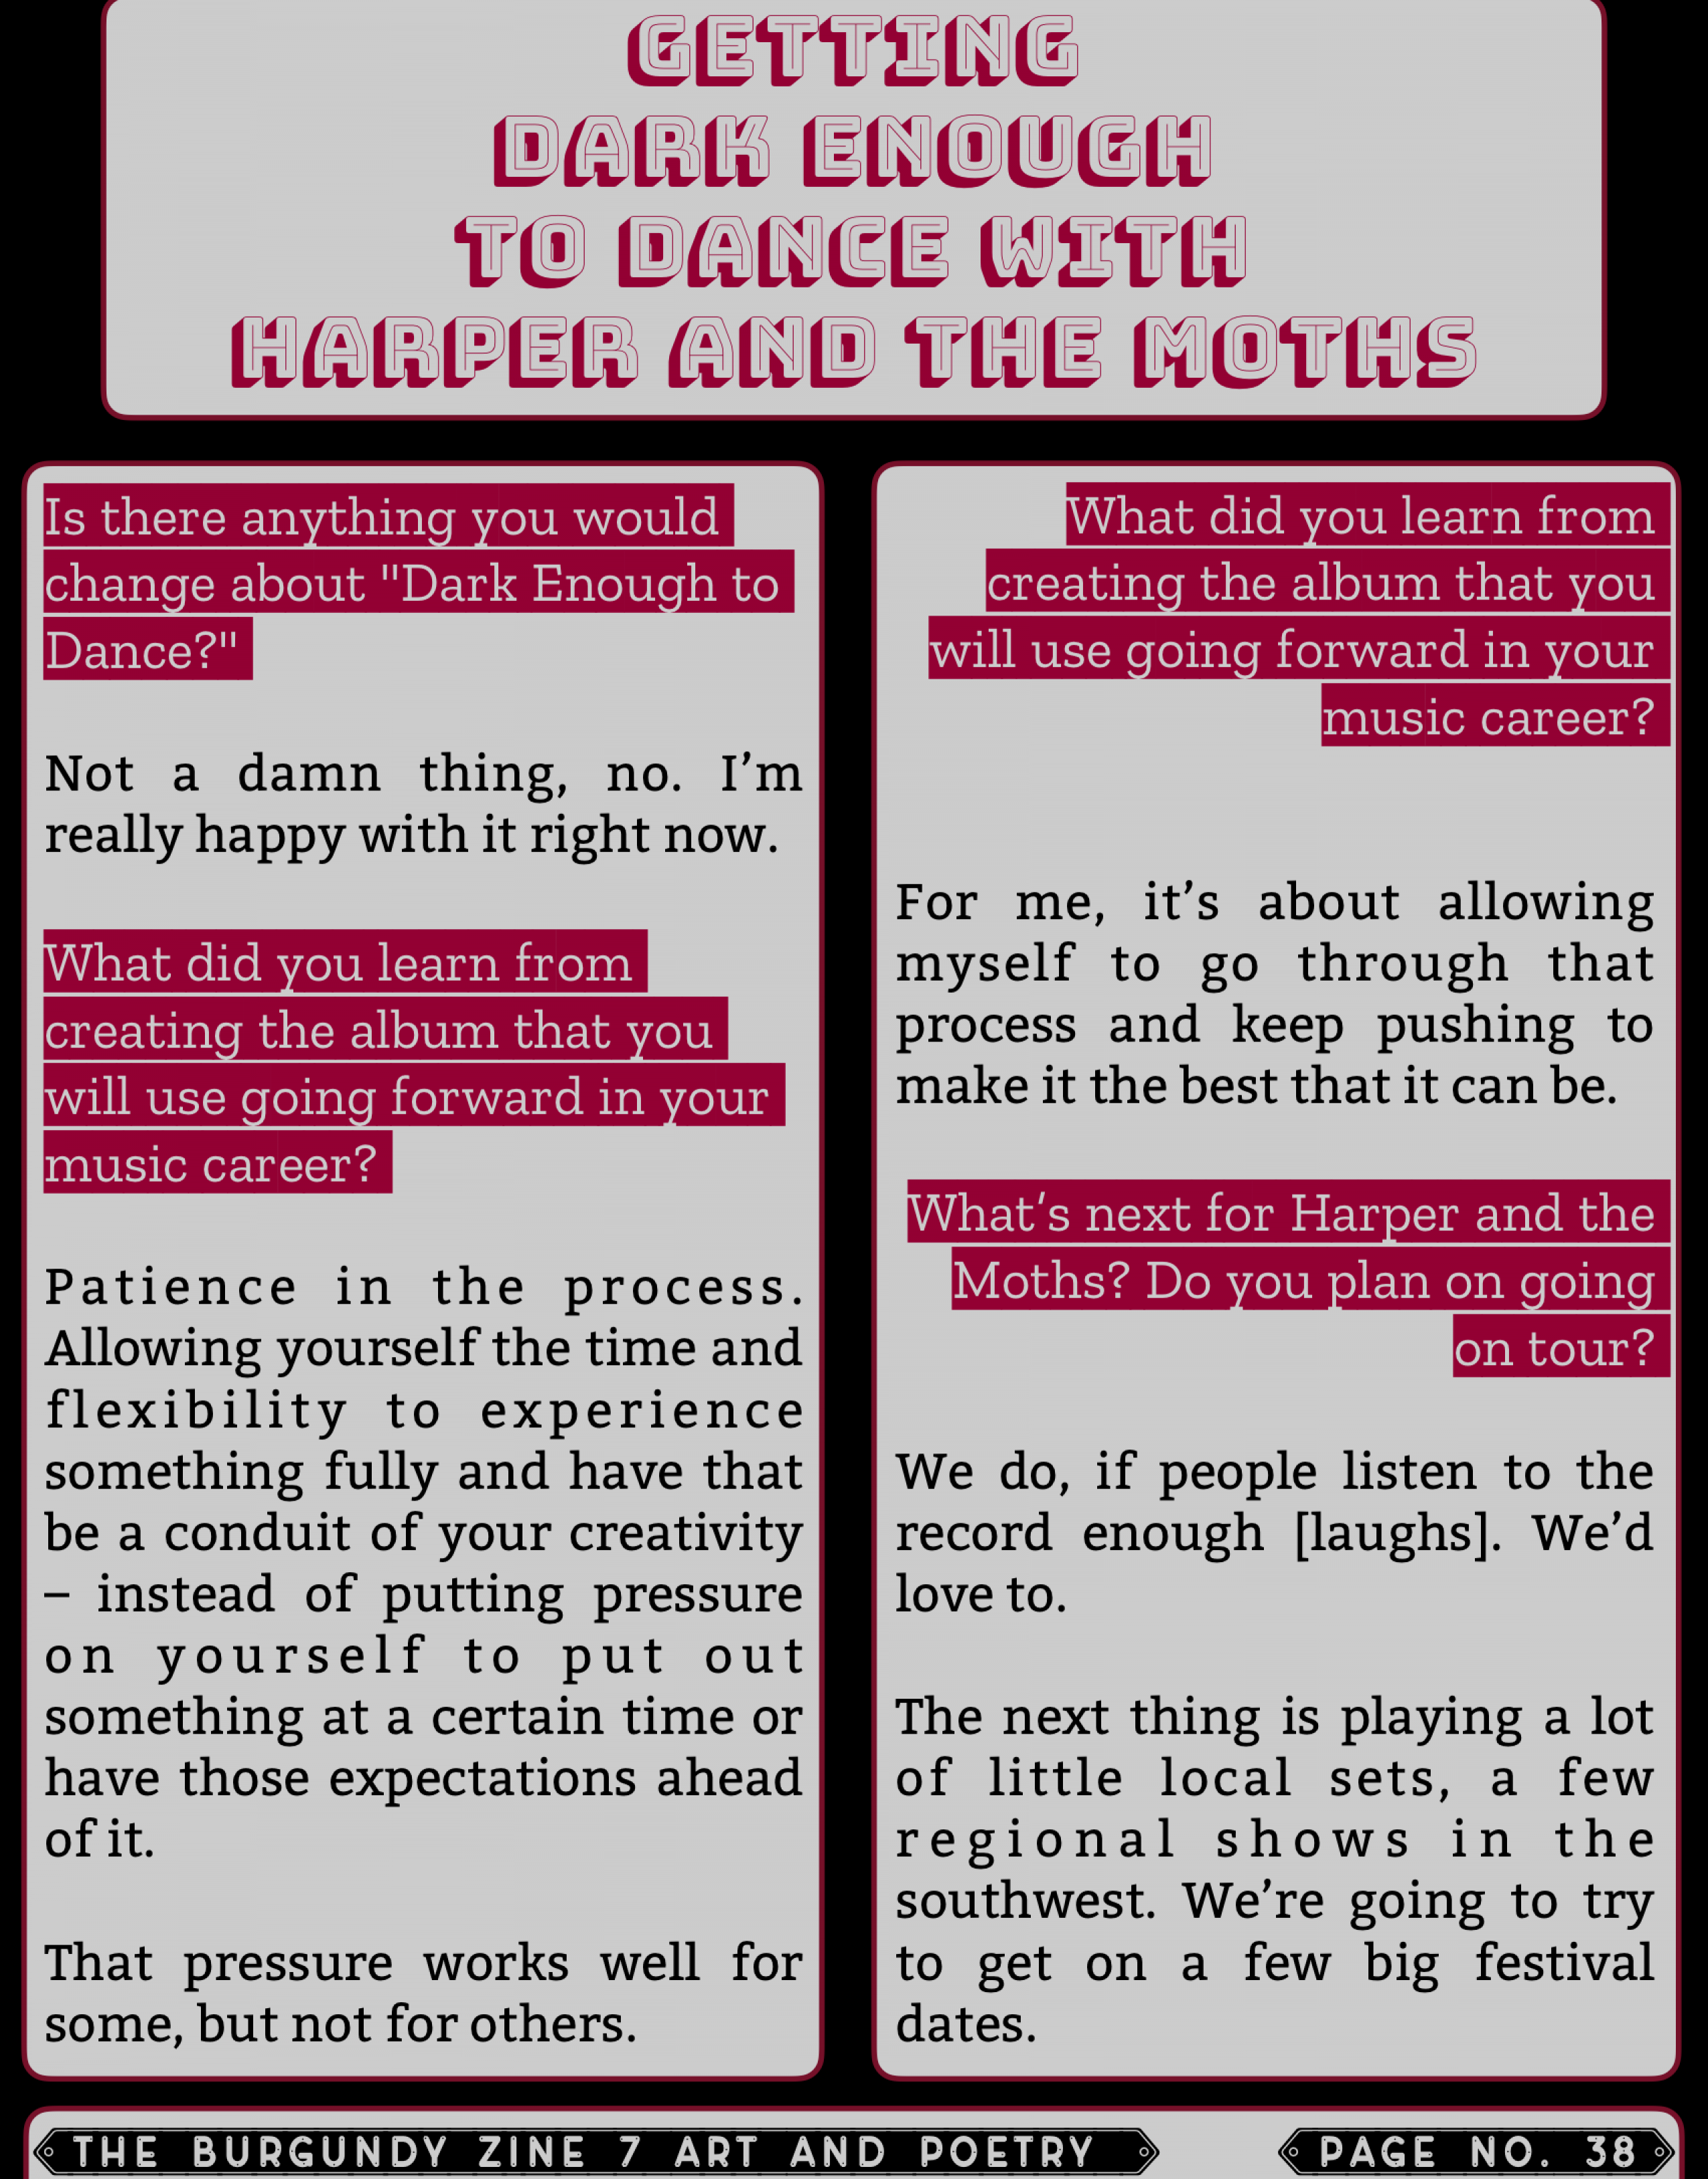 The Burgundy Zine #7 Art and Poetry 038